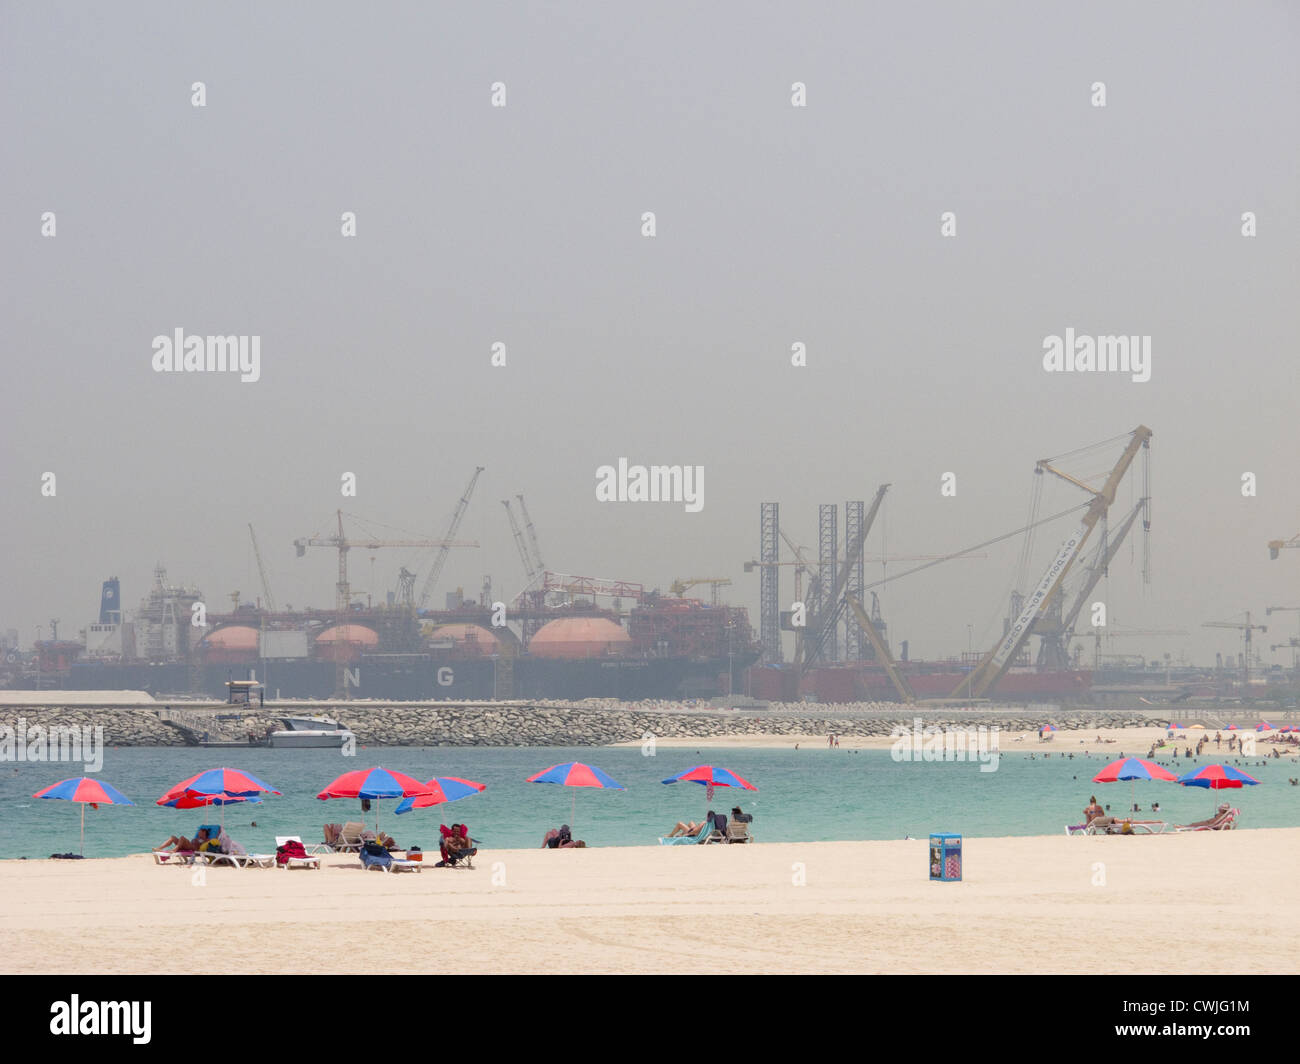 Sunbathers on a beach in Dubai with an industrial site in the background - Stock Image